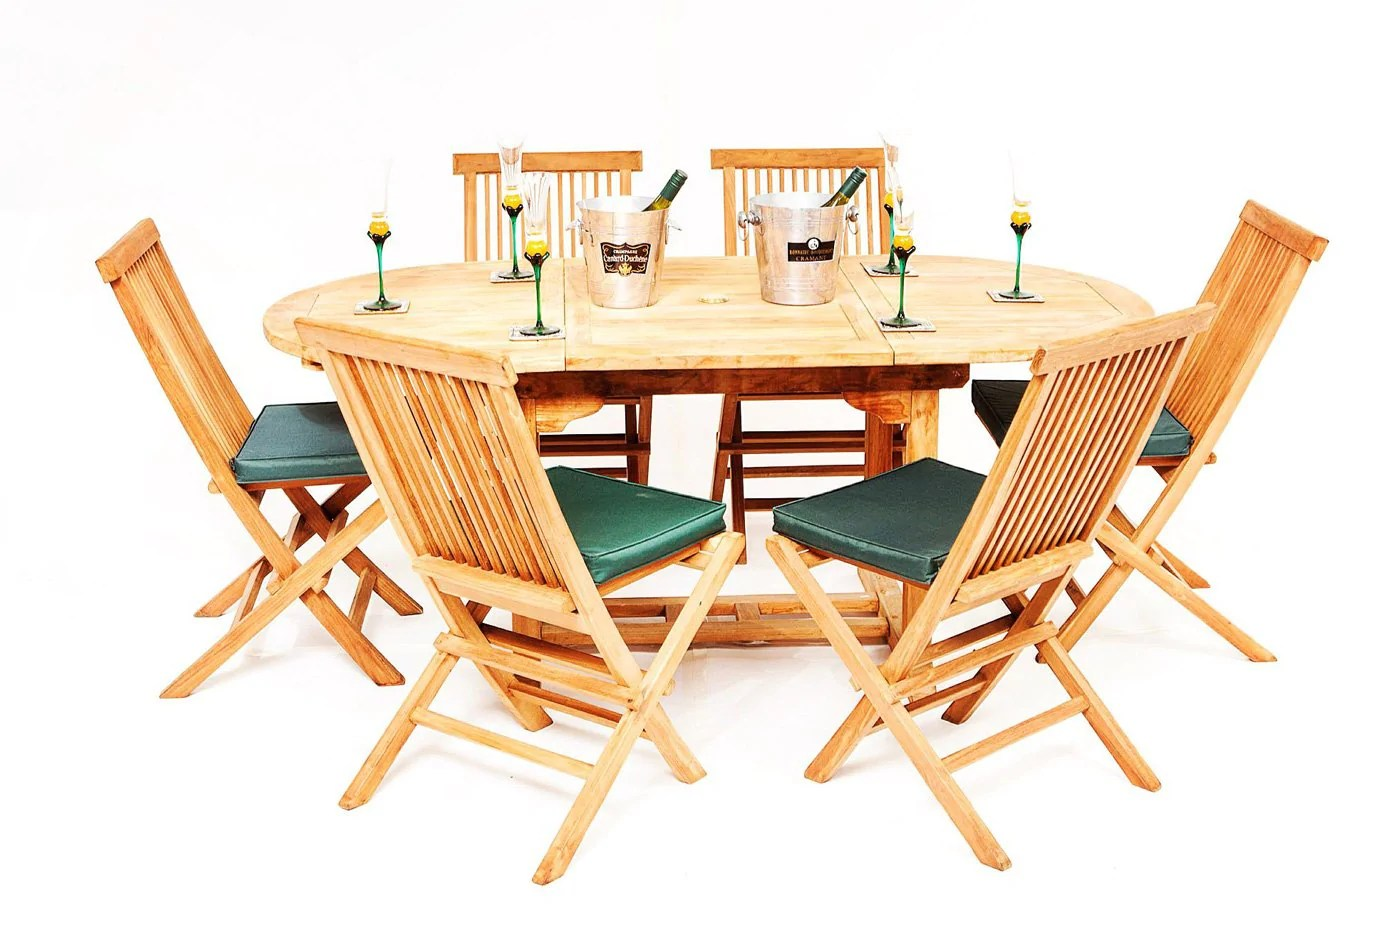 Outdoor Table And Chair Set The Beverley Teak 6 Seater Garden Table Chairs Set